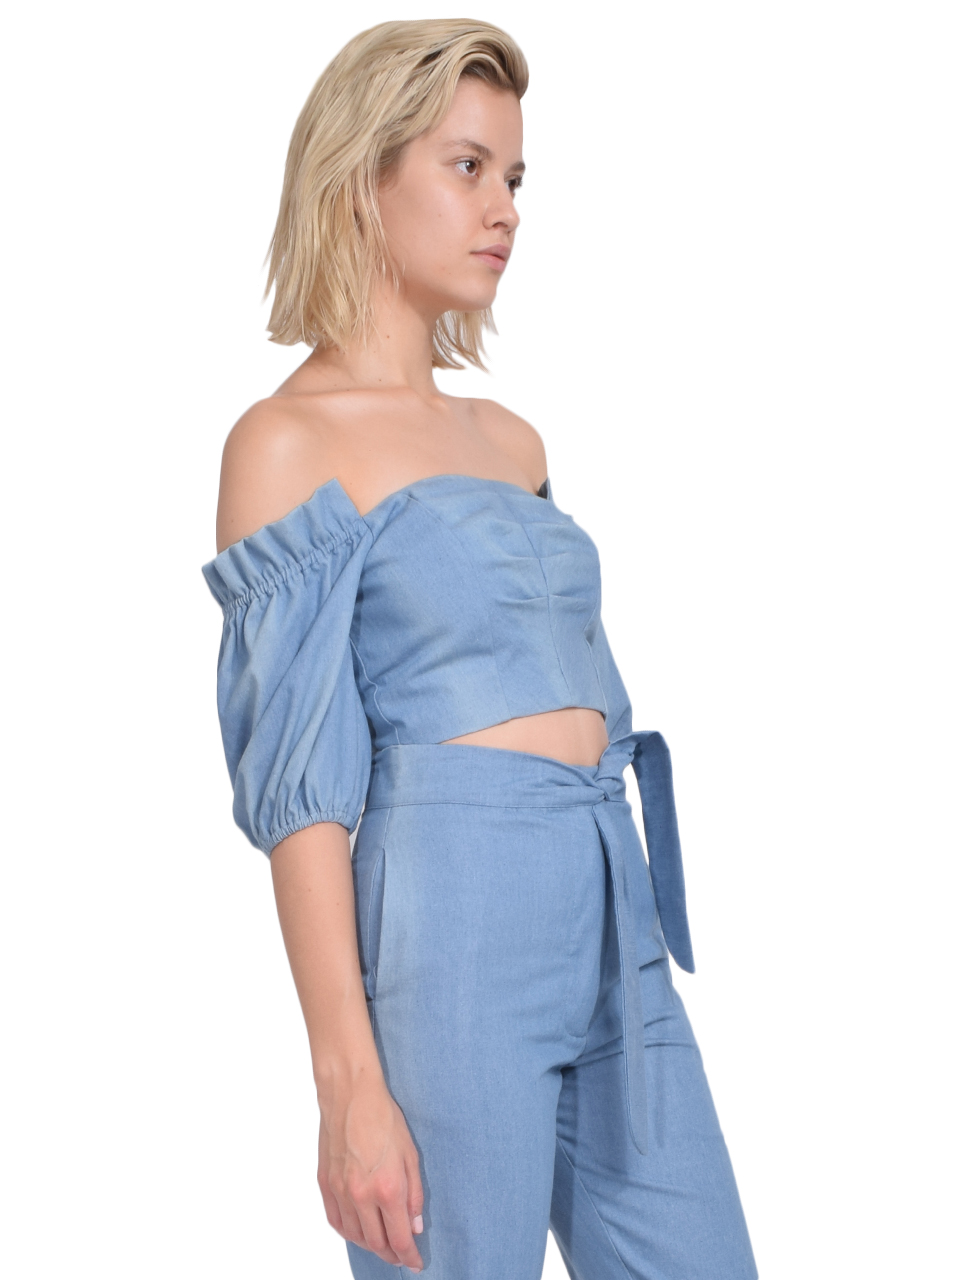 Karina Grimaldi Martha Denim Top Side View